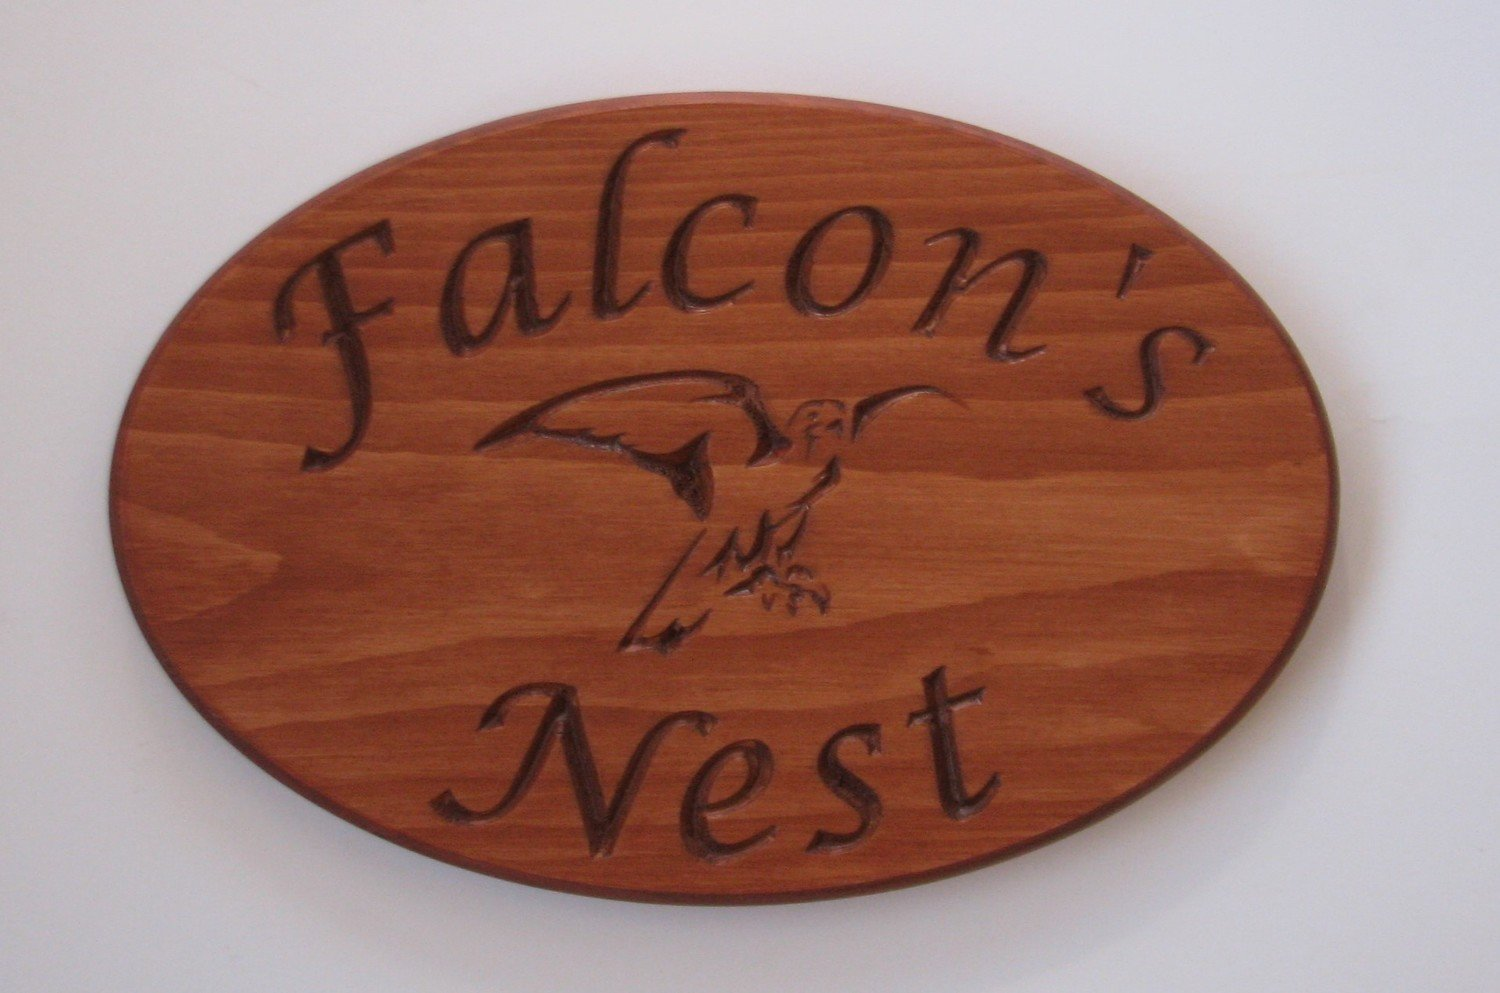 Indoor Stained Wood Falcons Nest Plaque